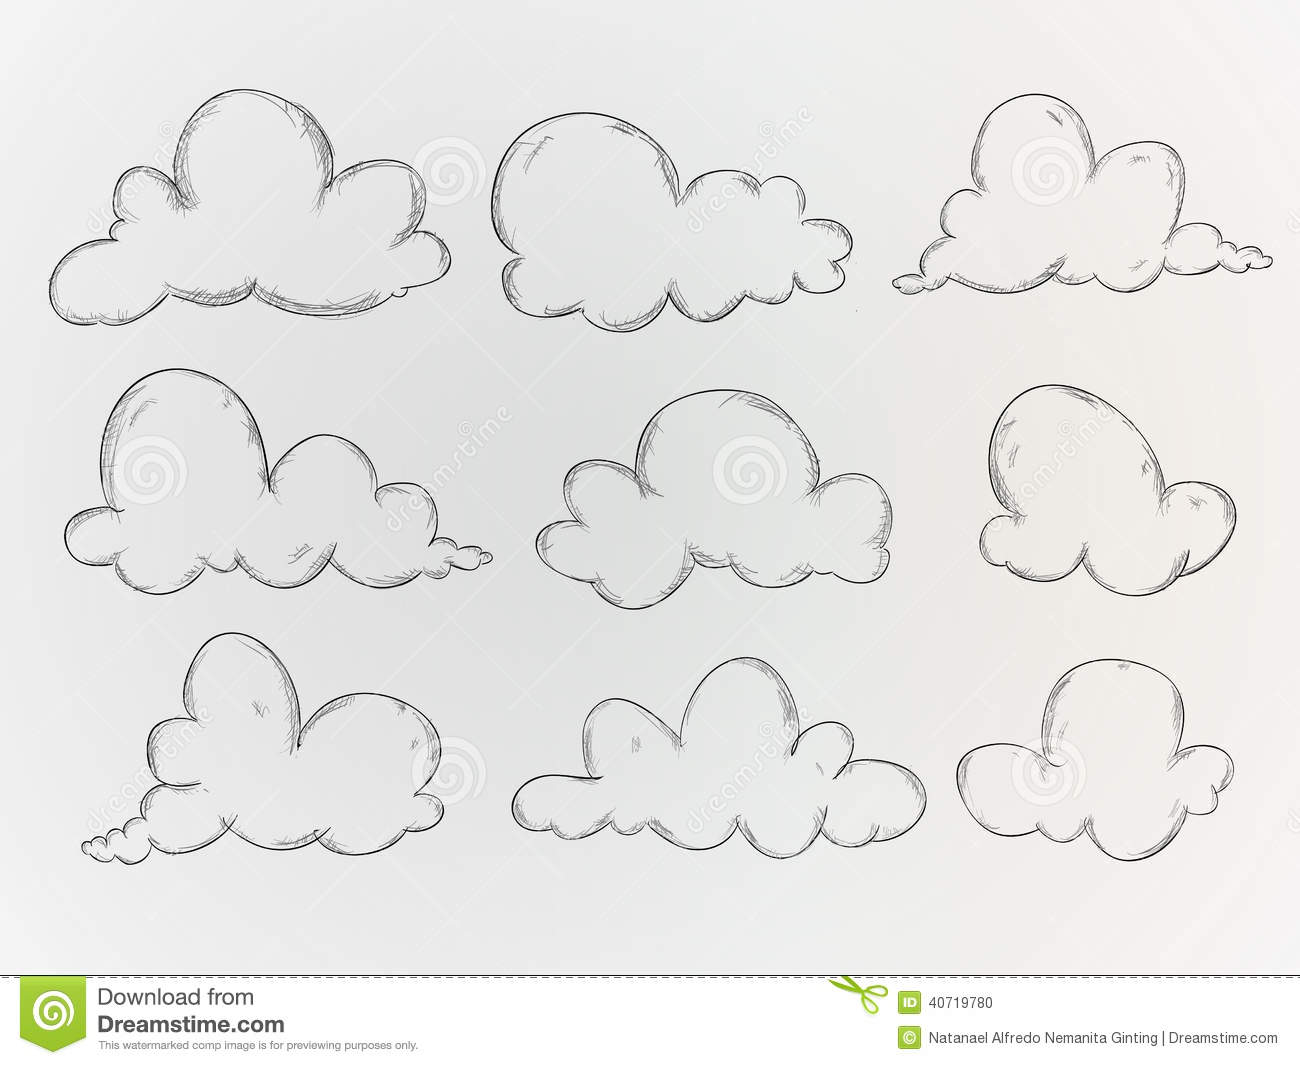 Notebook And Pen Sketch Stock Vector Art More Images Of: Clouds Sketch Vector Pack Stock Vector. Illustration Of